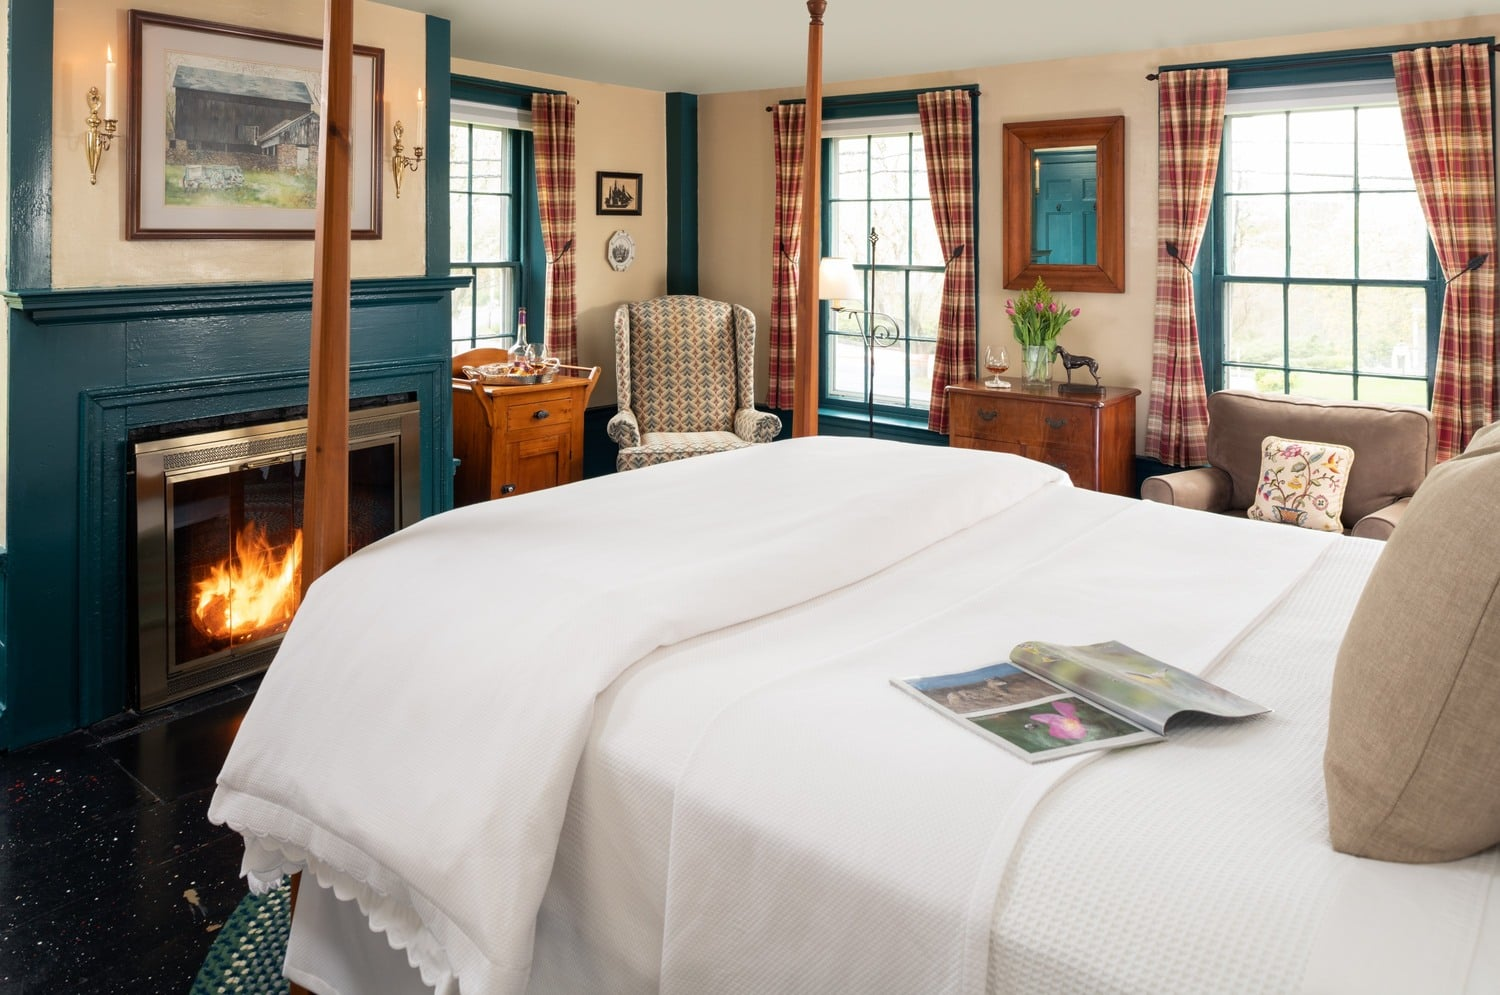 Highlands Room at Candleberry Inn Bed and Breakfast on Cape Cod